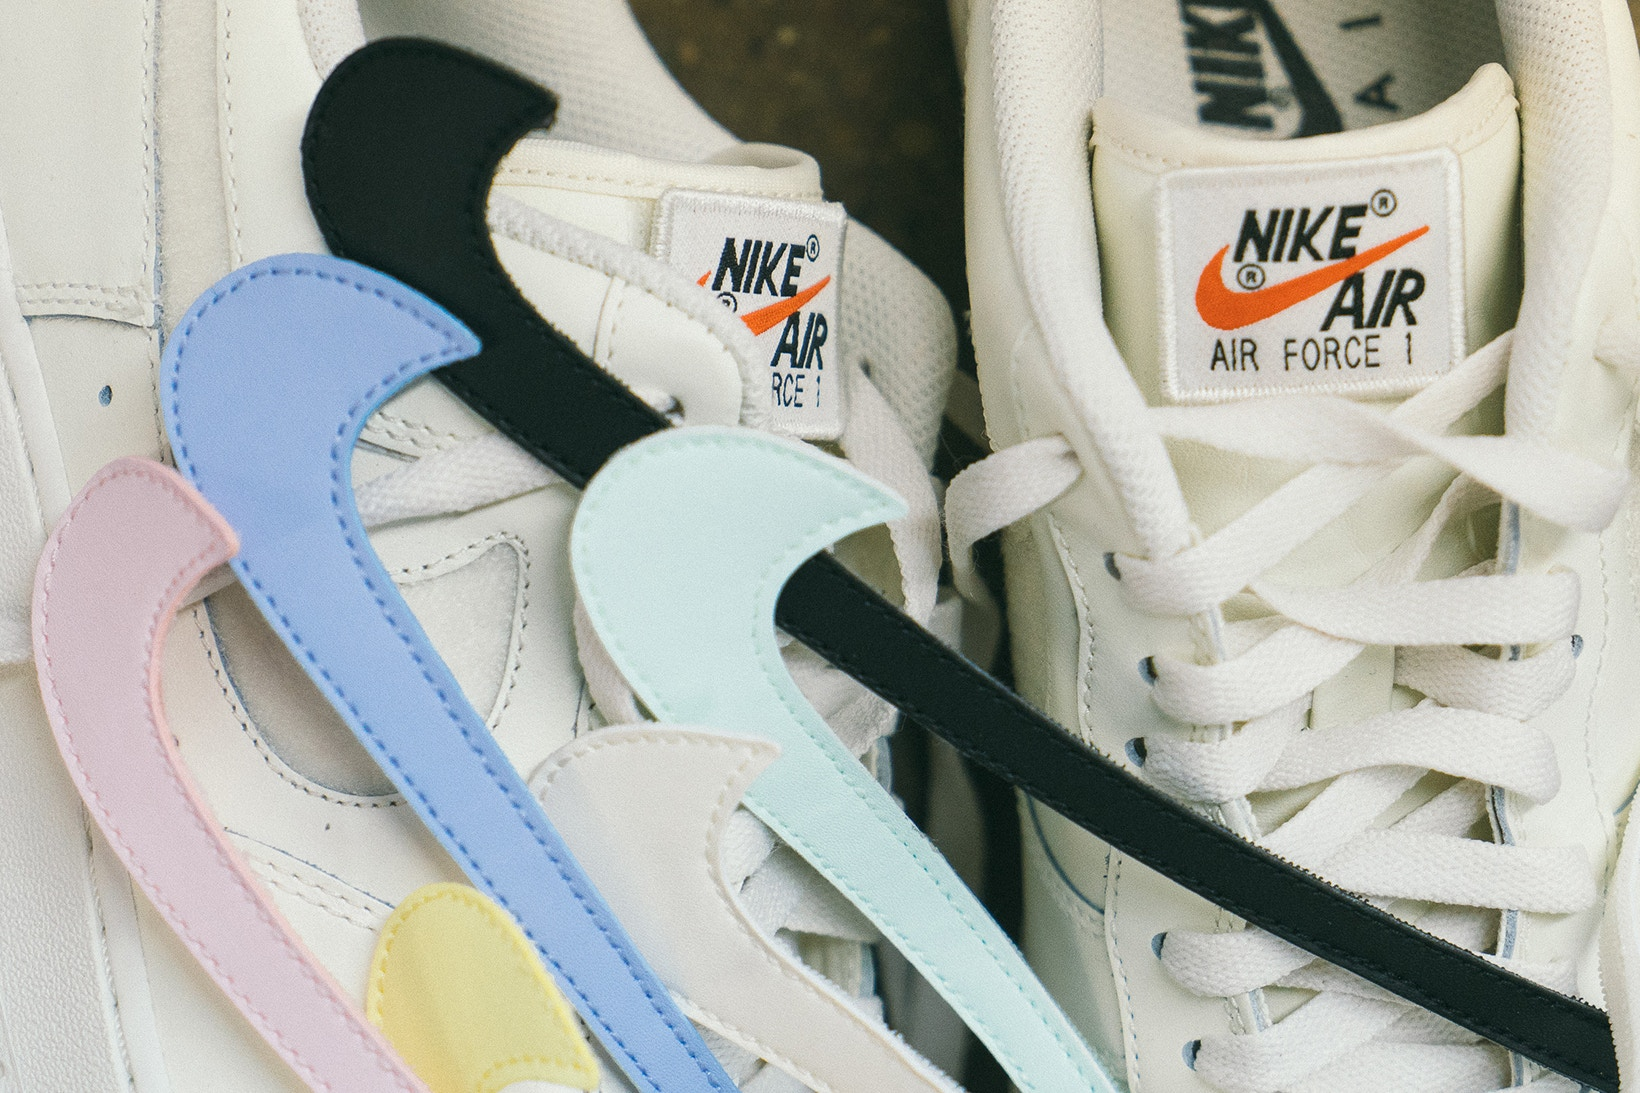 Teoría de la relatividad bolso diario  Nike's Customisable Air Force 1 Is Launching With Pretty Pastel Swooshes    The Sole Supplier